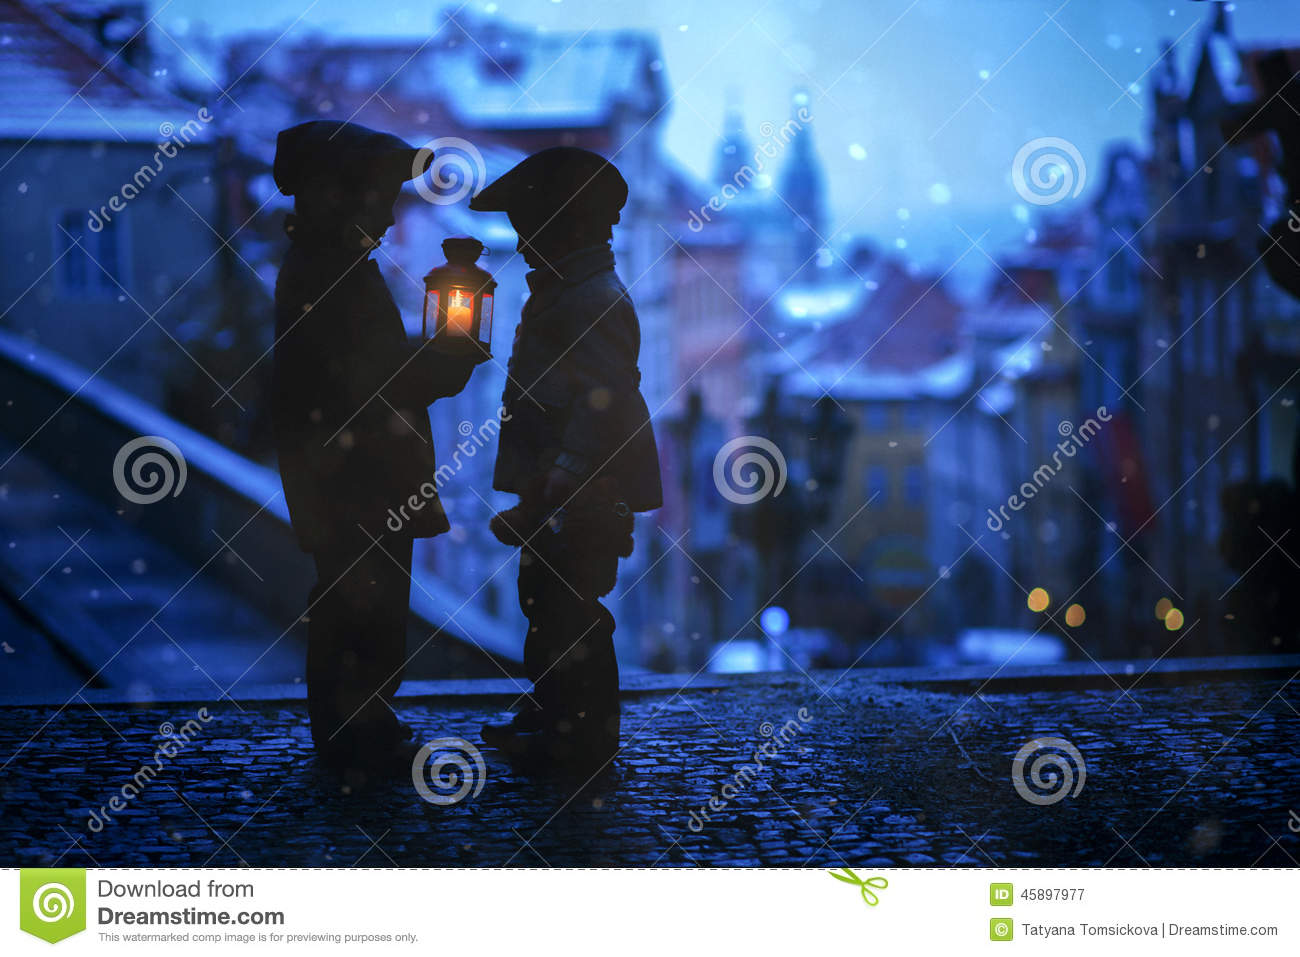 Asian Kids Writing Parents Monitoring Their Doing Homework besides Yellow Star Thumbs Up Character besides Knight Light Sea Green Silhouette together with Cone furthermore Silhouettes Two Kids Standing Stairs Holding Lantern View Prague Behind Them Snowy Evening. on yellow objects clipart for kids